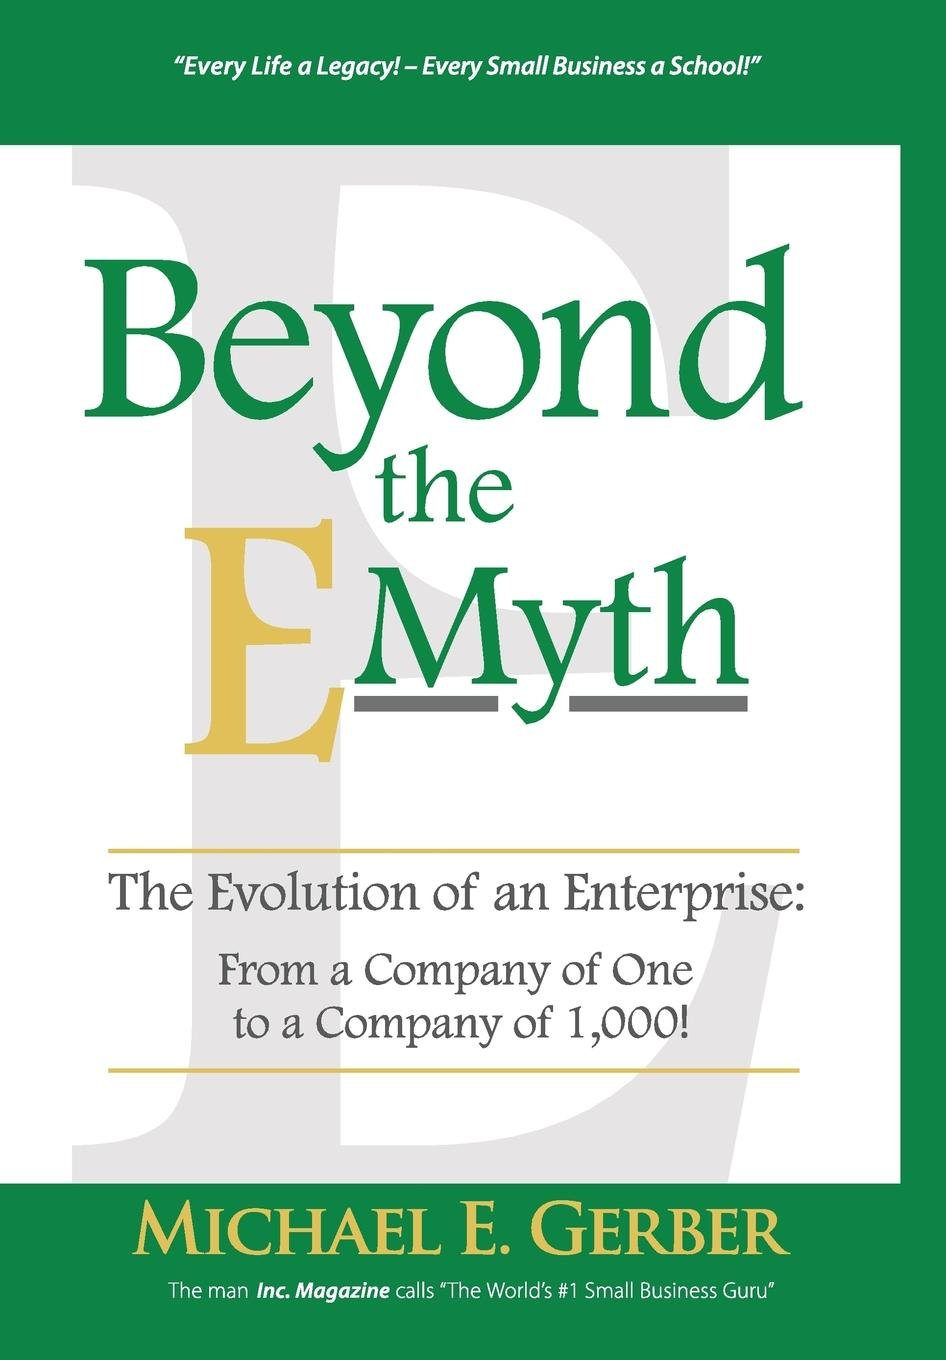 Download Beyond the E-Myth: The Evolution of an Enterprise: From a Company of One to a Company of 1,000! PDF